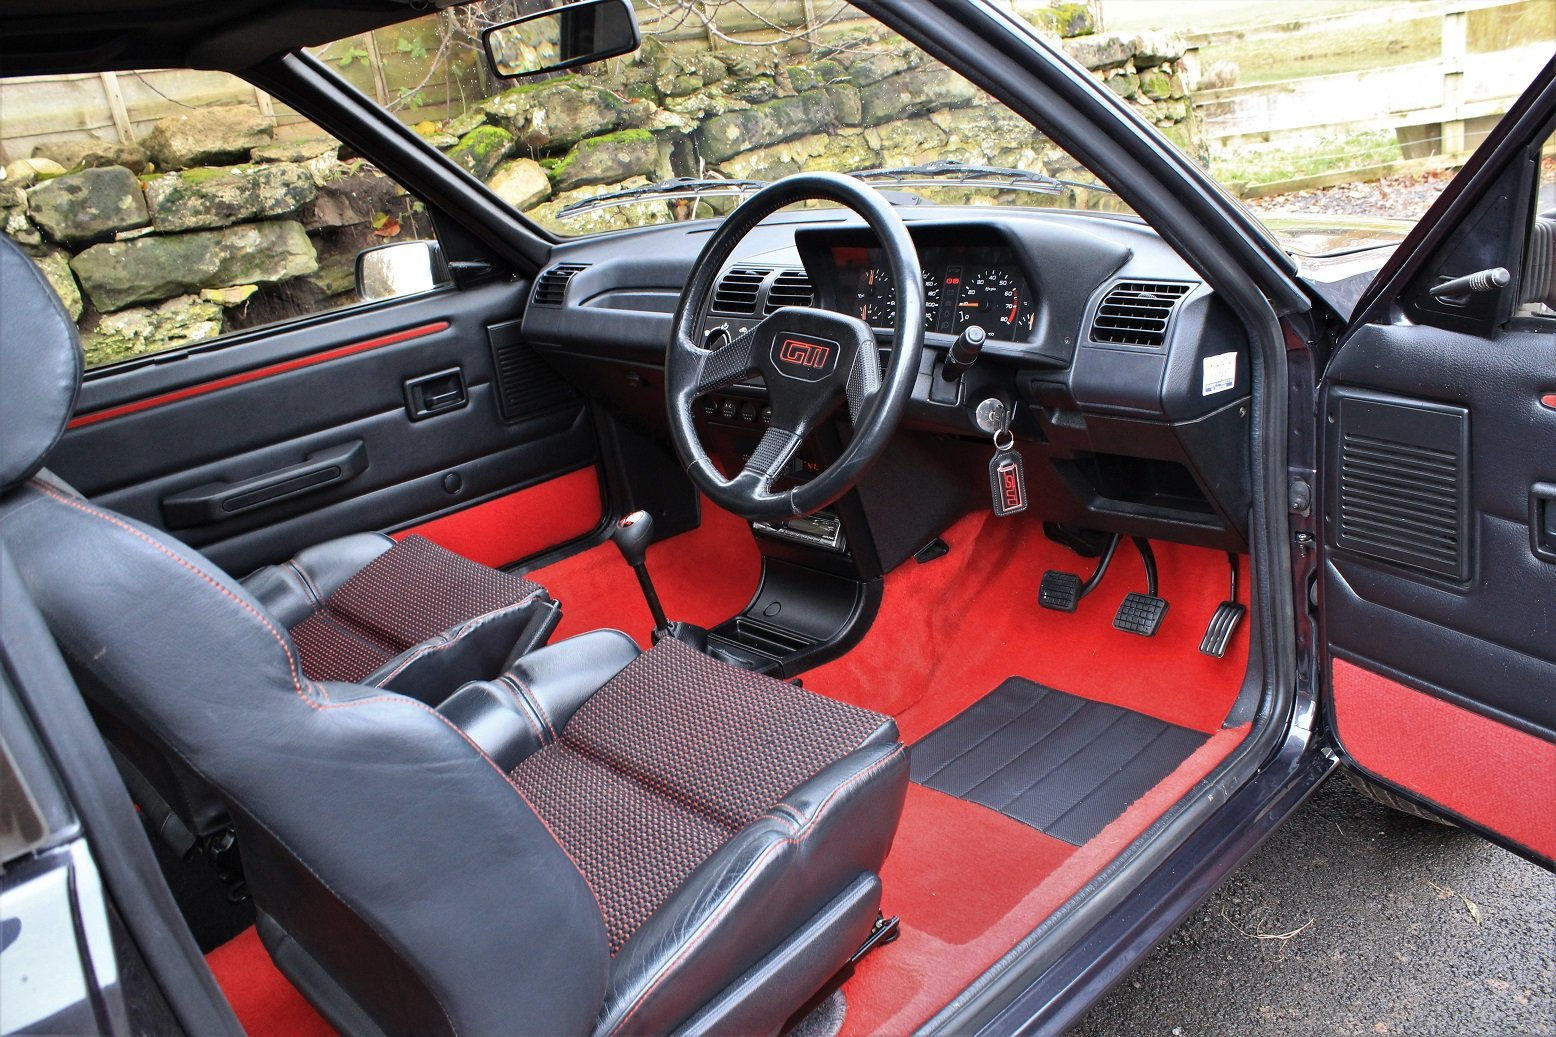 1991 Peugeot 205 GTI 3dr,65,534 miles from new For Sale (picture 4 of 6)